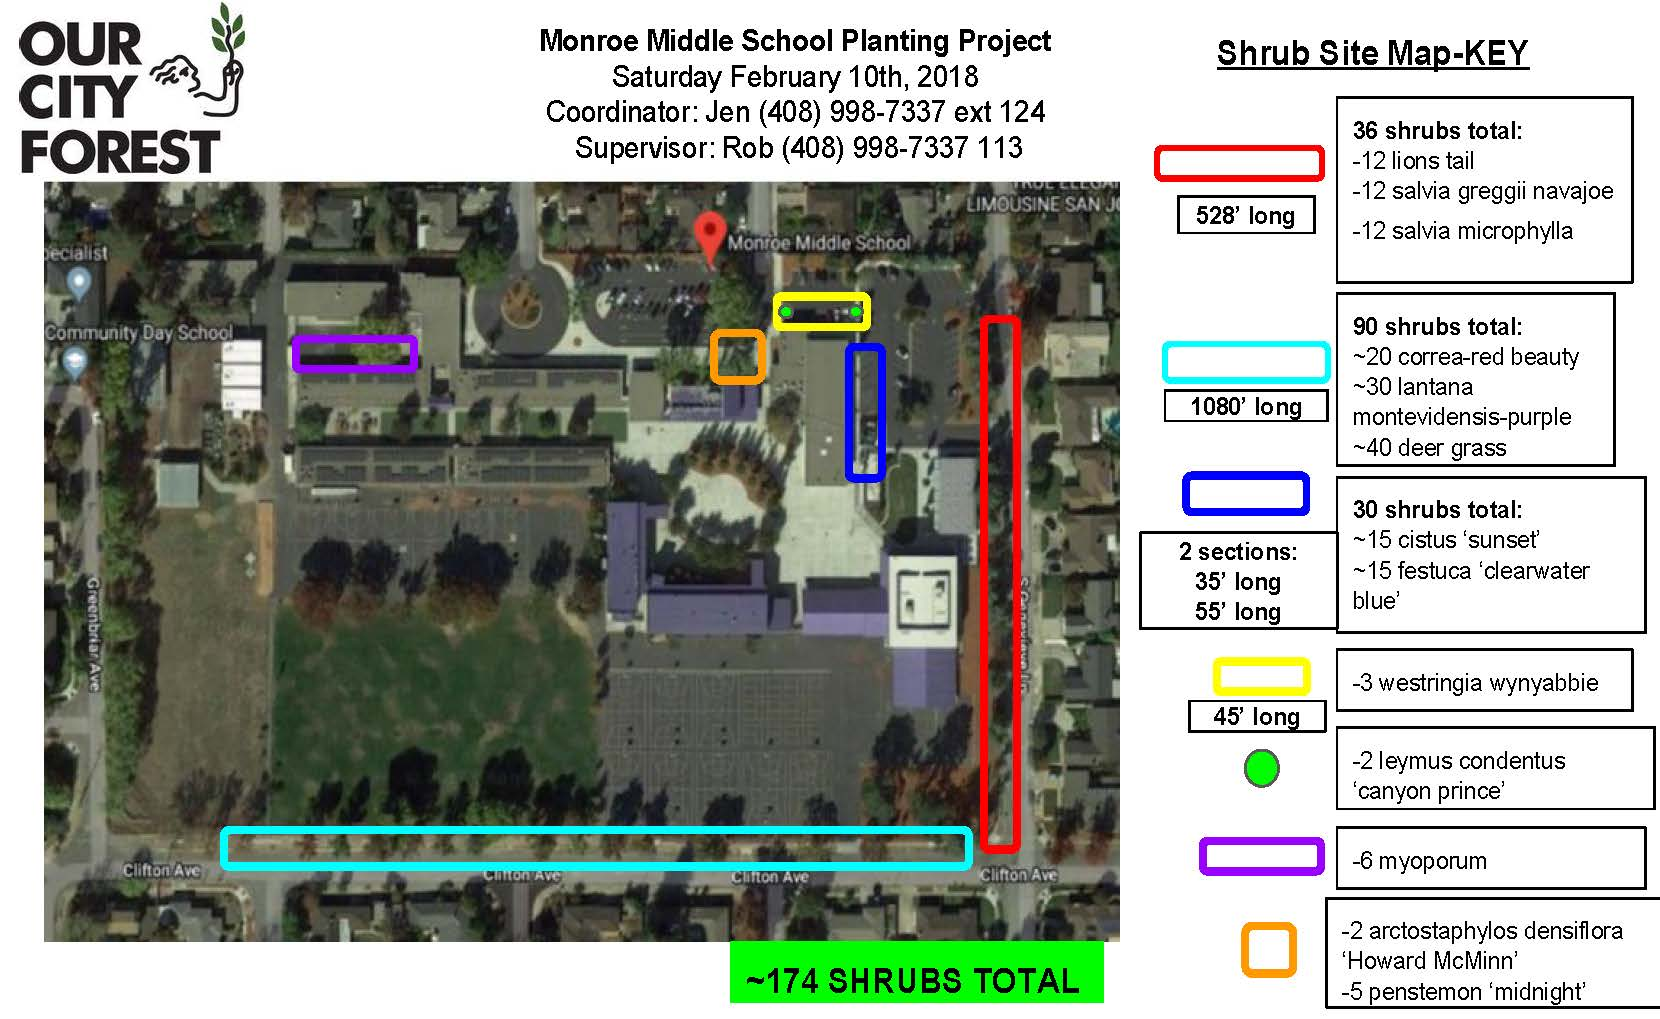 These are the shrubs (indicated by the red rectangle and turquoise rectangle, 126 total that Hamann Park would be responsible for watering, although part of this burden would potentially be shared with Monroe/Campbell Unified School District (they have already committed to supplying the water).